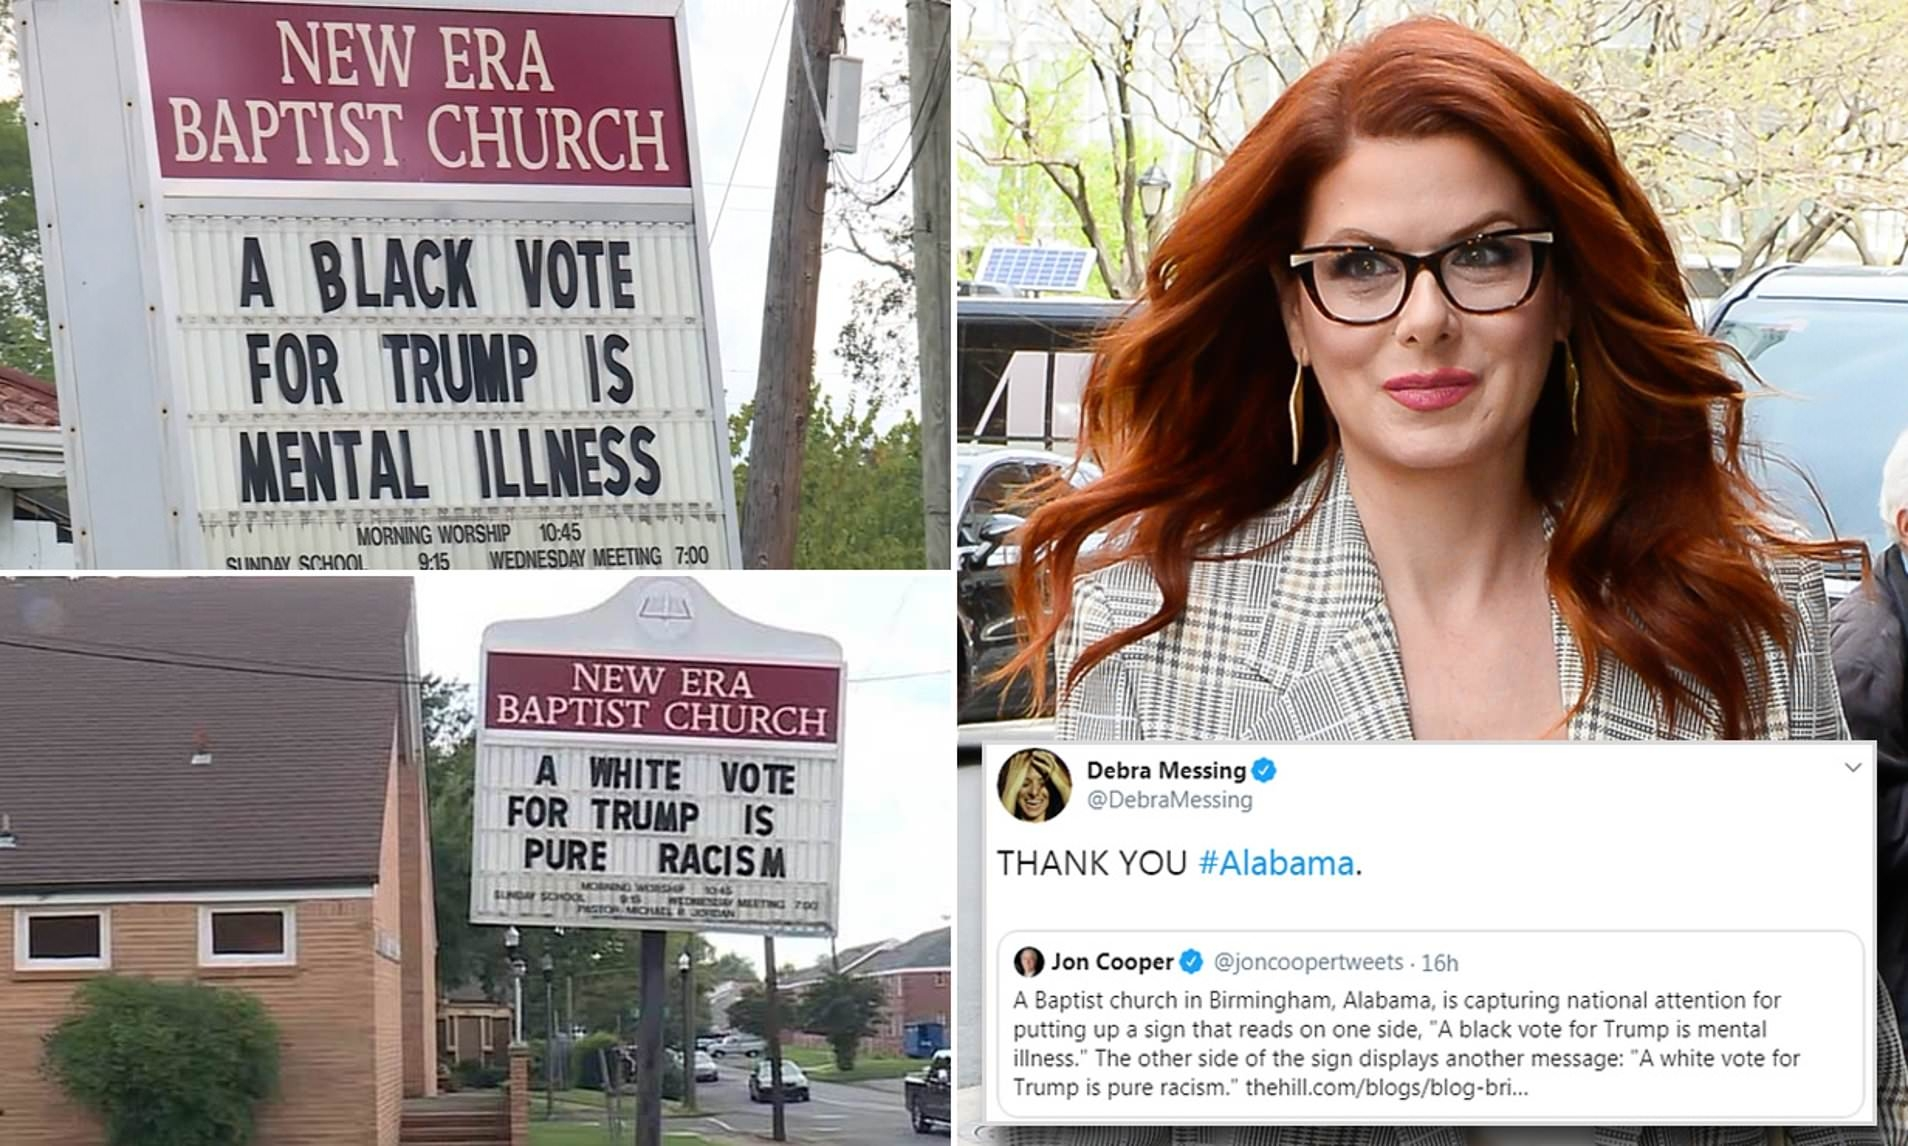 'Will & Grace' star celebrates sign calling black Trump voters mentally ill